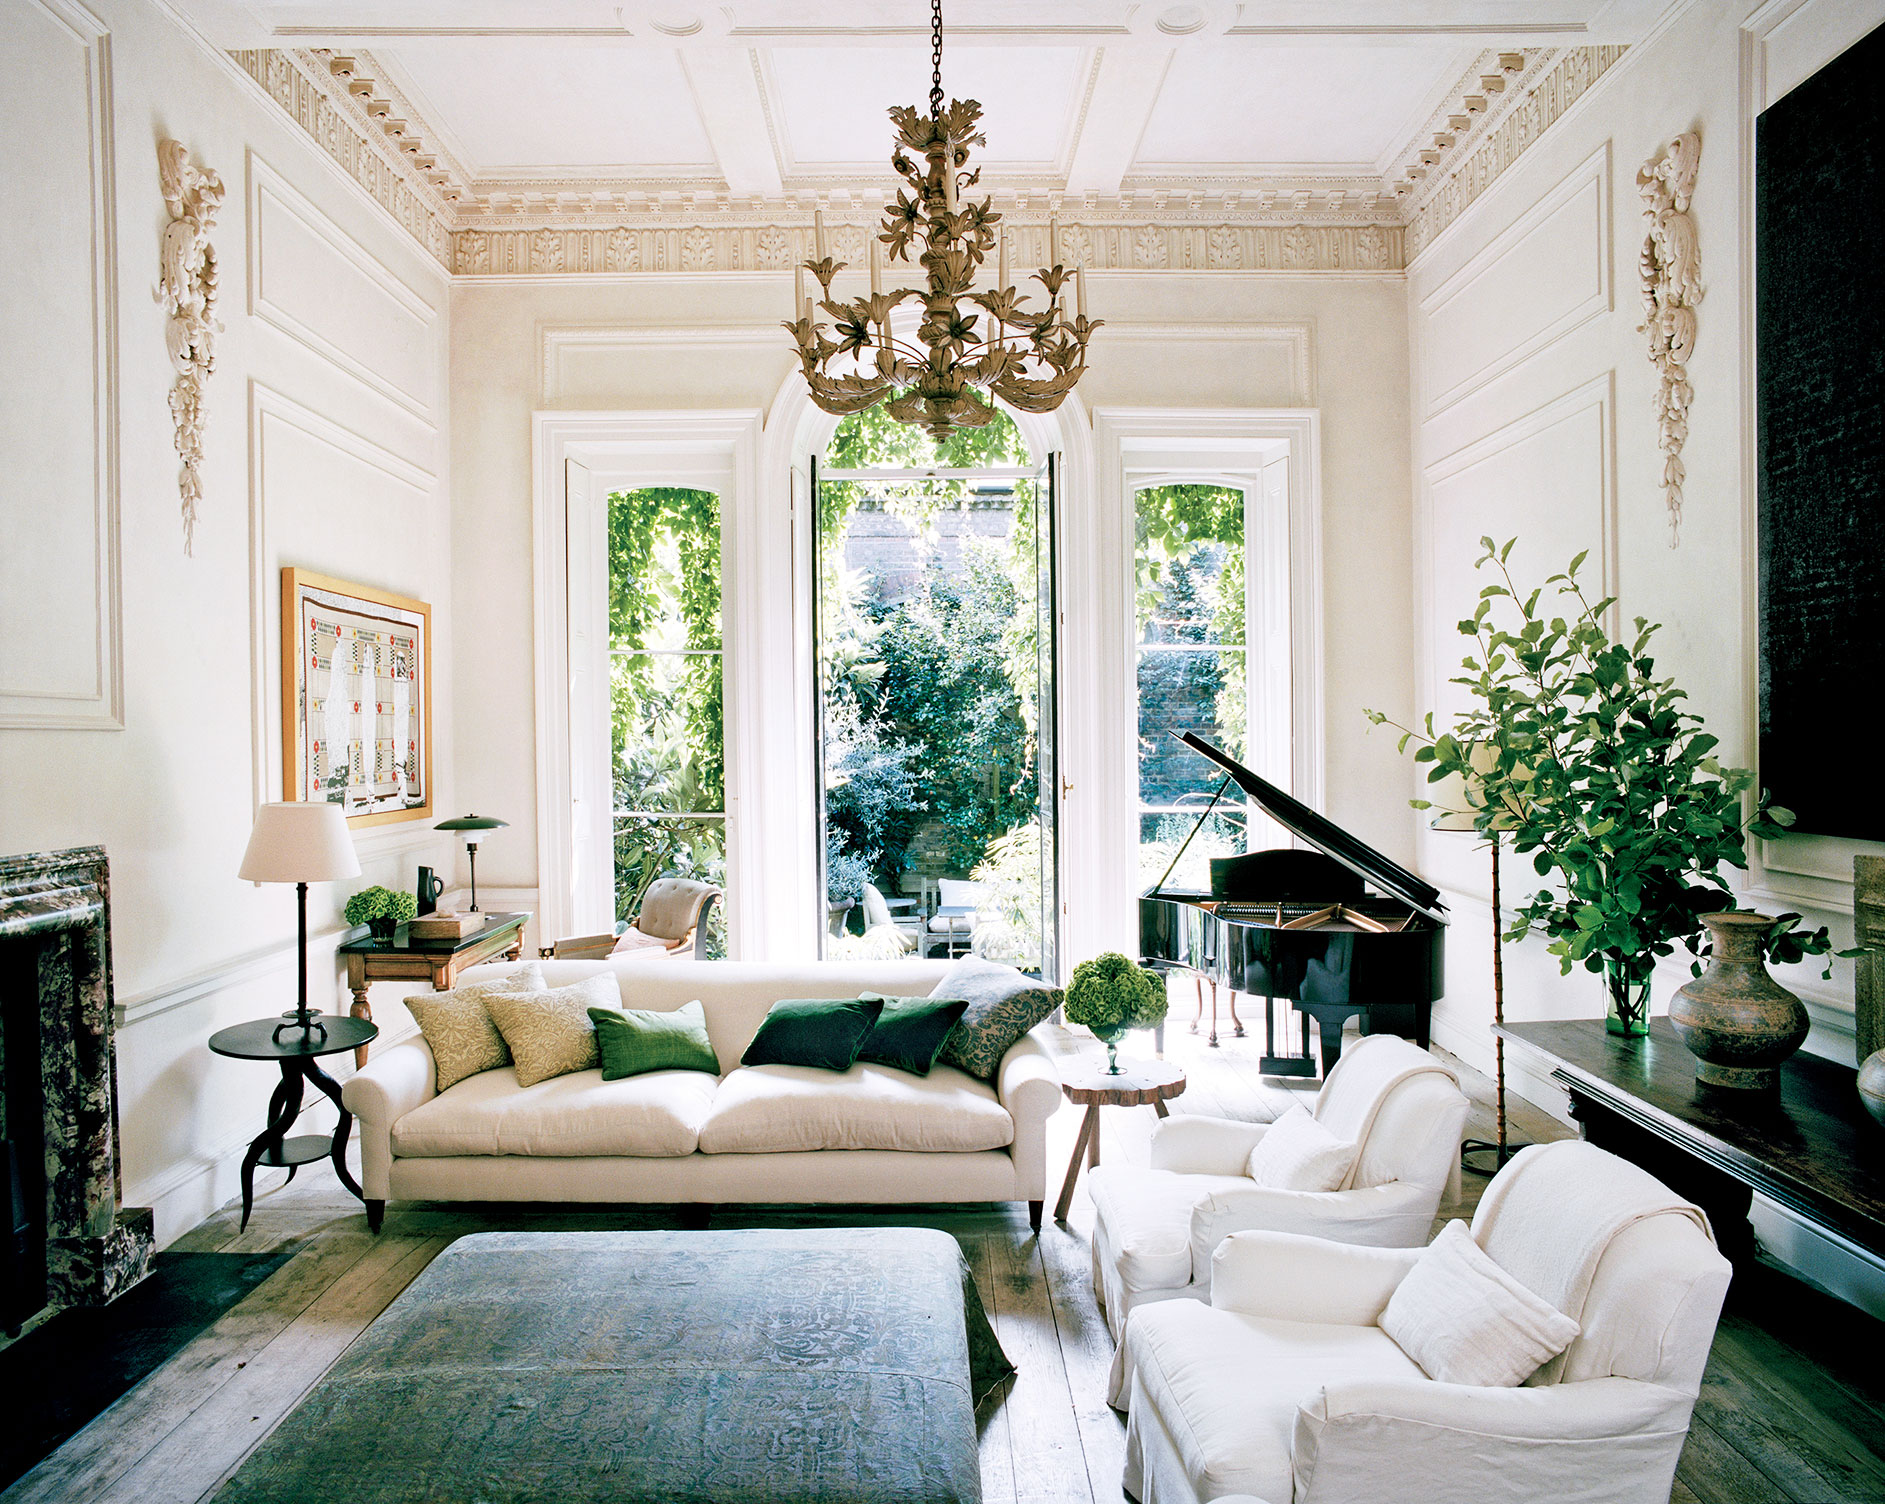 Modern Elegance In Nineteenth Century London Home | COCOCOZY